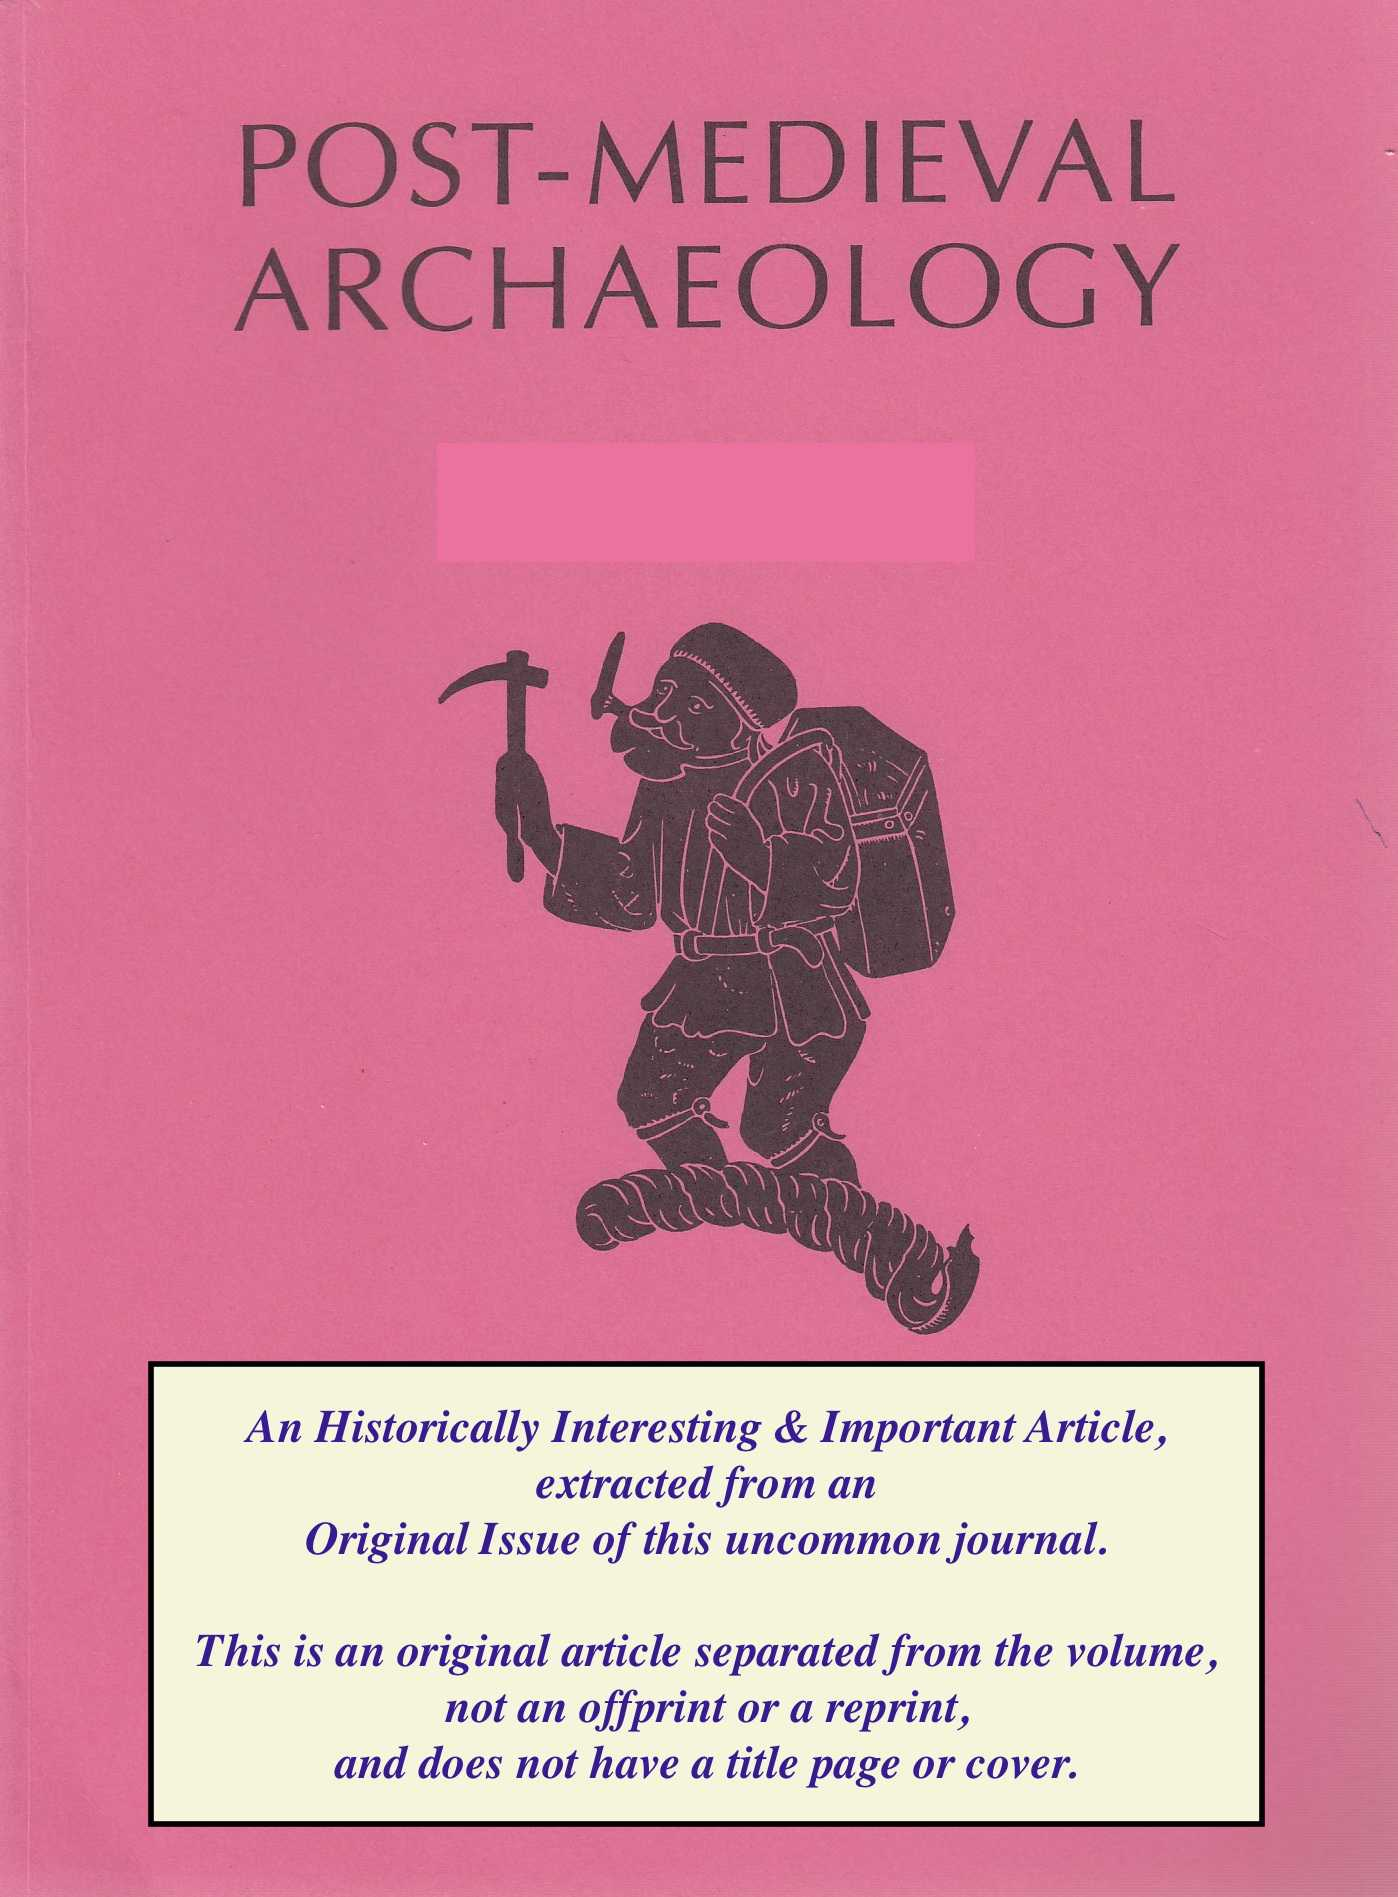 COAD, JONATHAN - Warfare and defence: what next? An original article from the Post Medieval Archaeology journal, 2005.